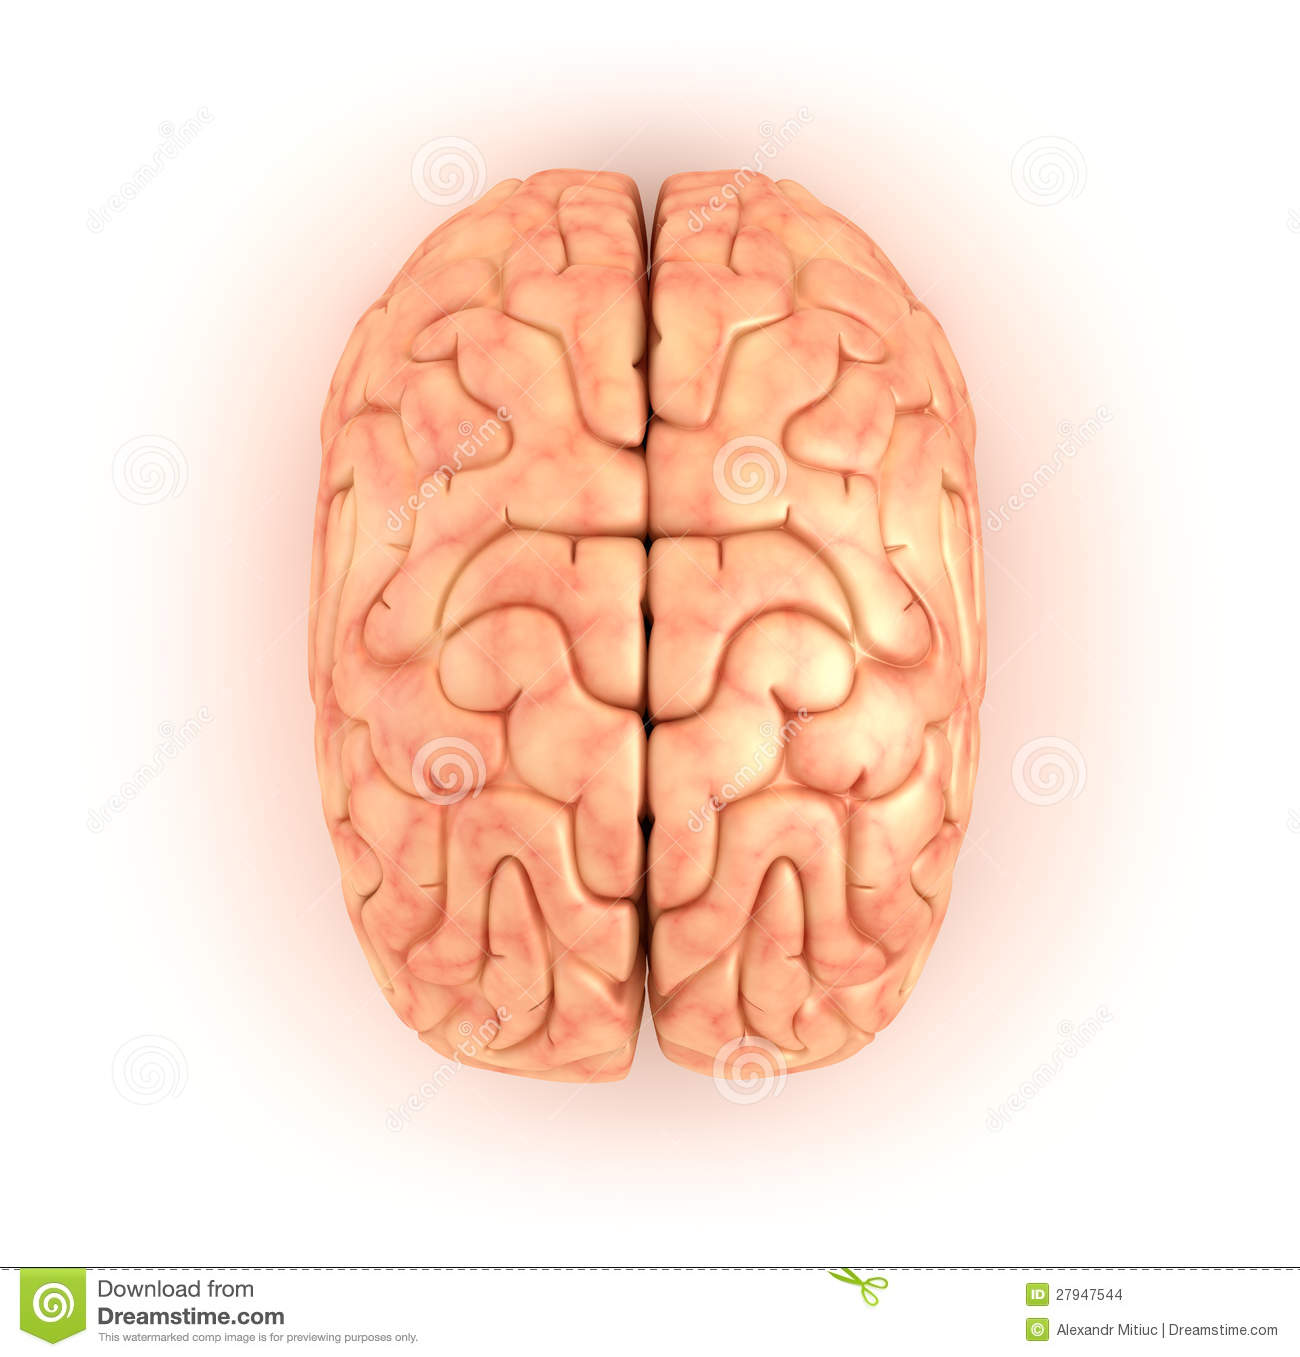 Human brain top view stock illustration illustration of human brain top view ccuart Choice Image